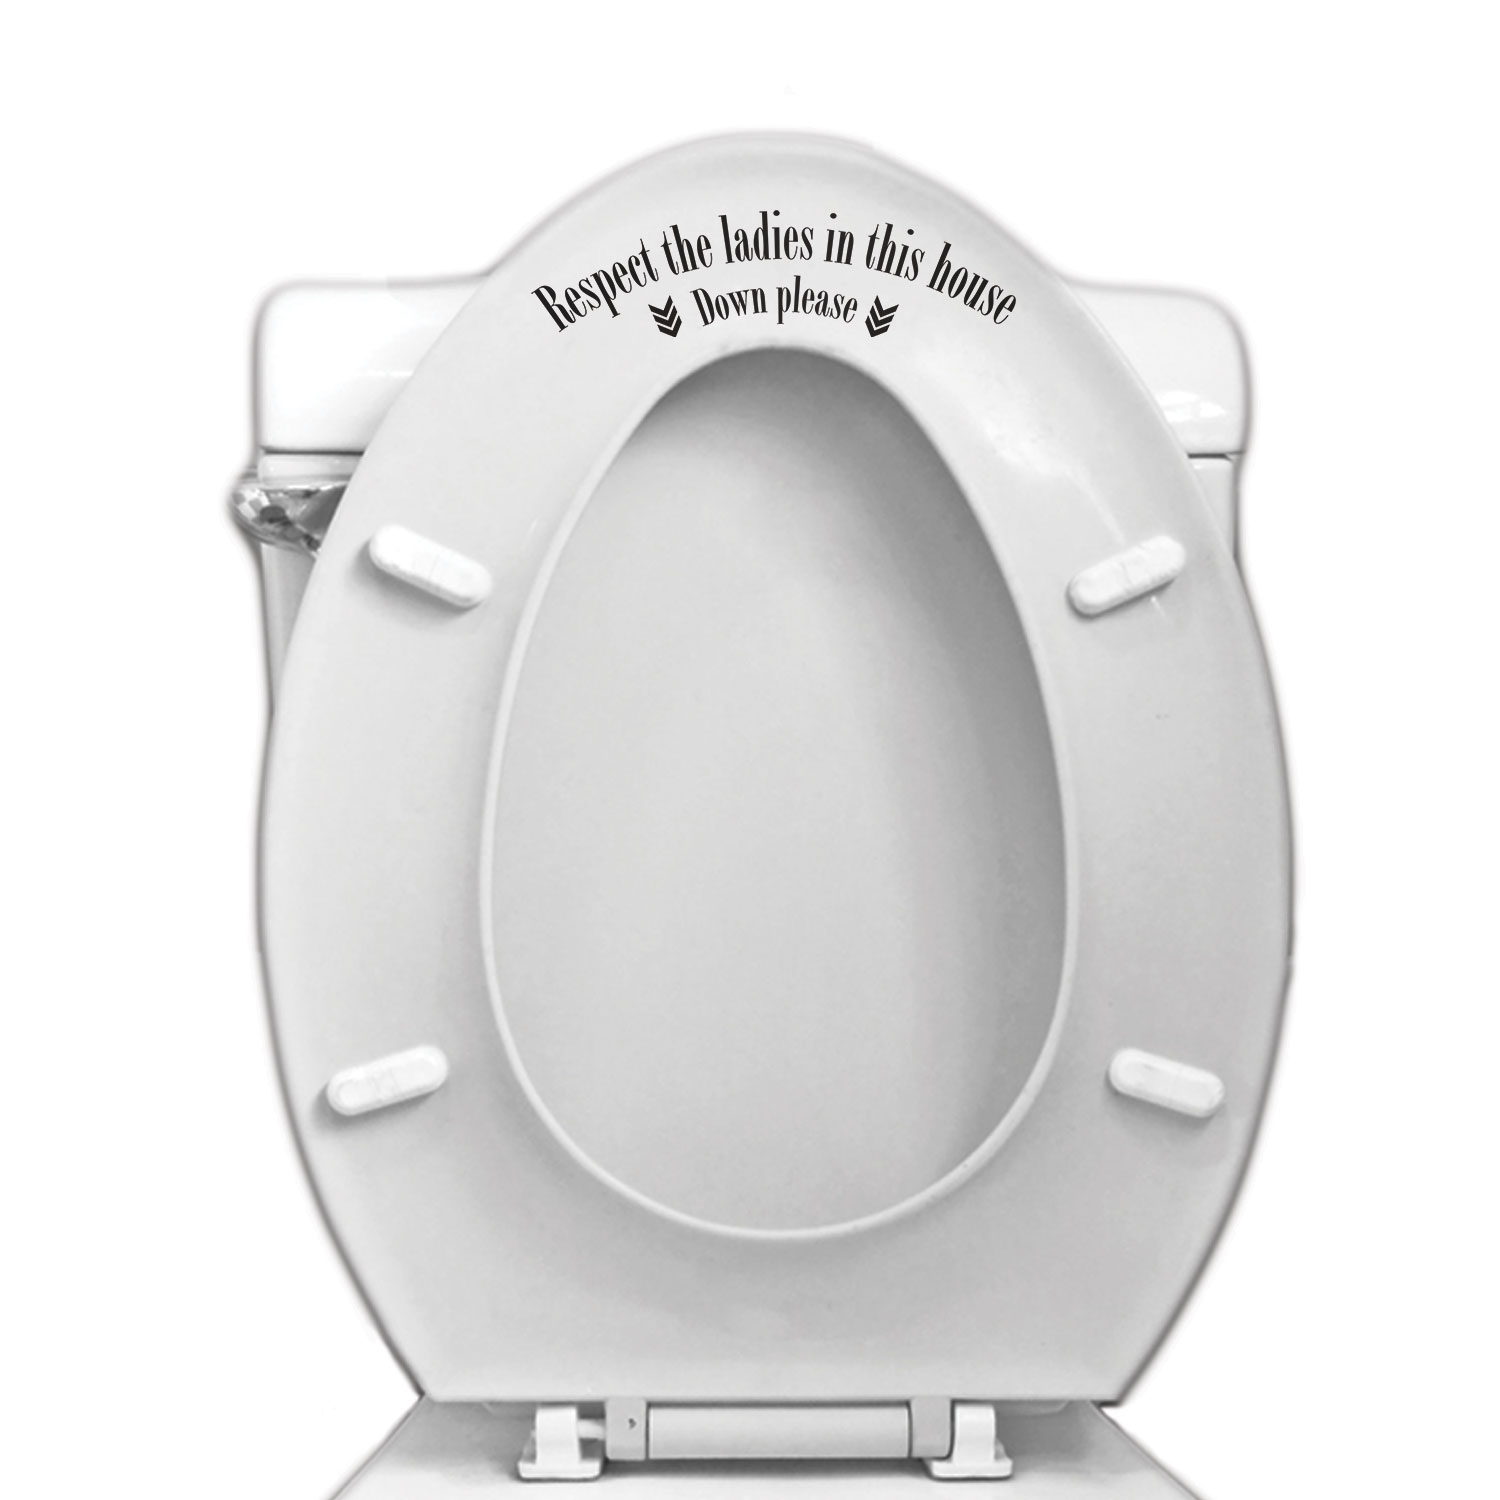 Sticker Voor Badkamer Respect The Ladies Toilet Seat Vinyl Decal For Bathroom